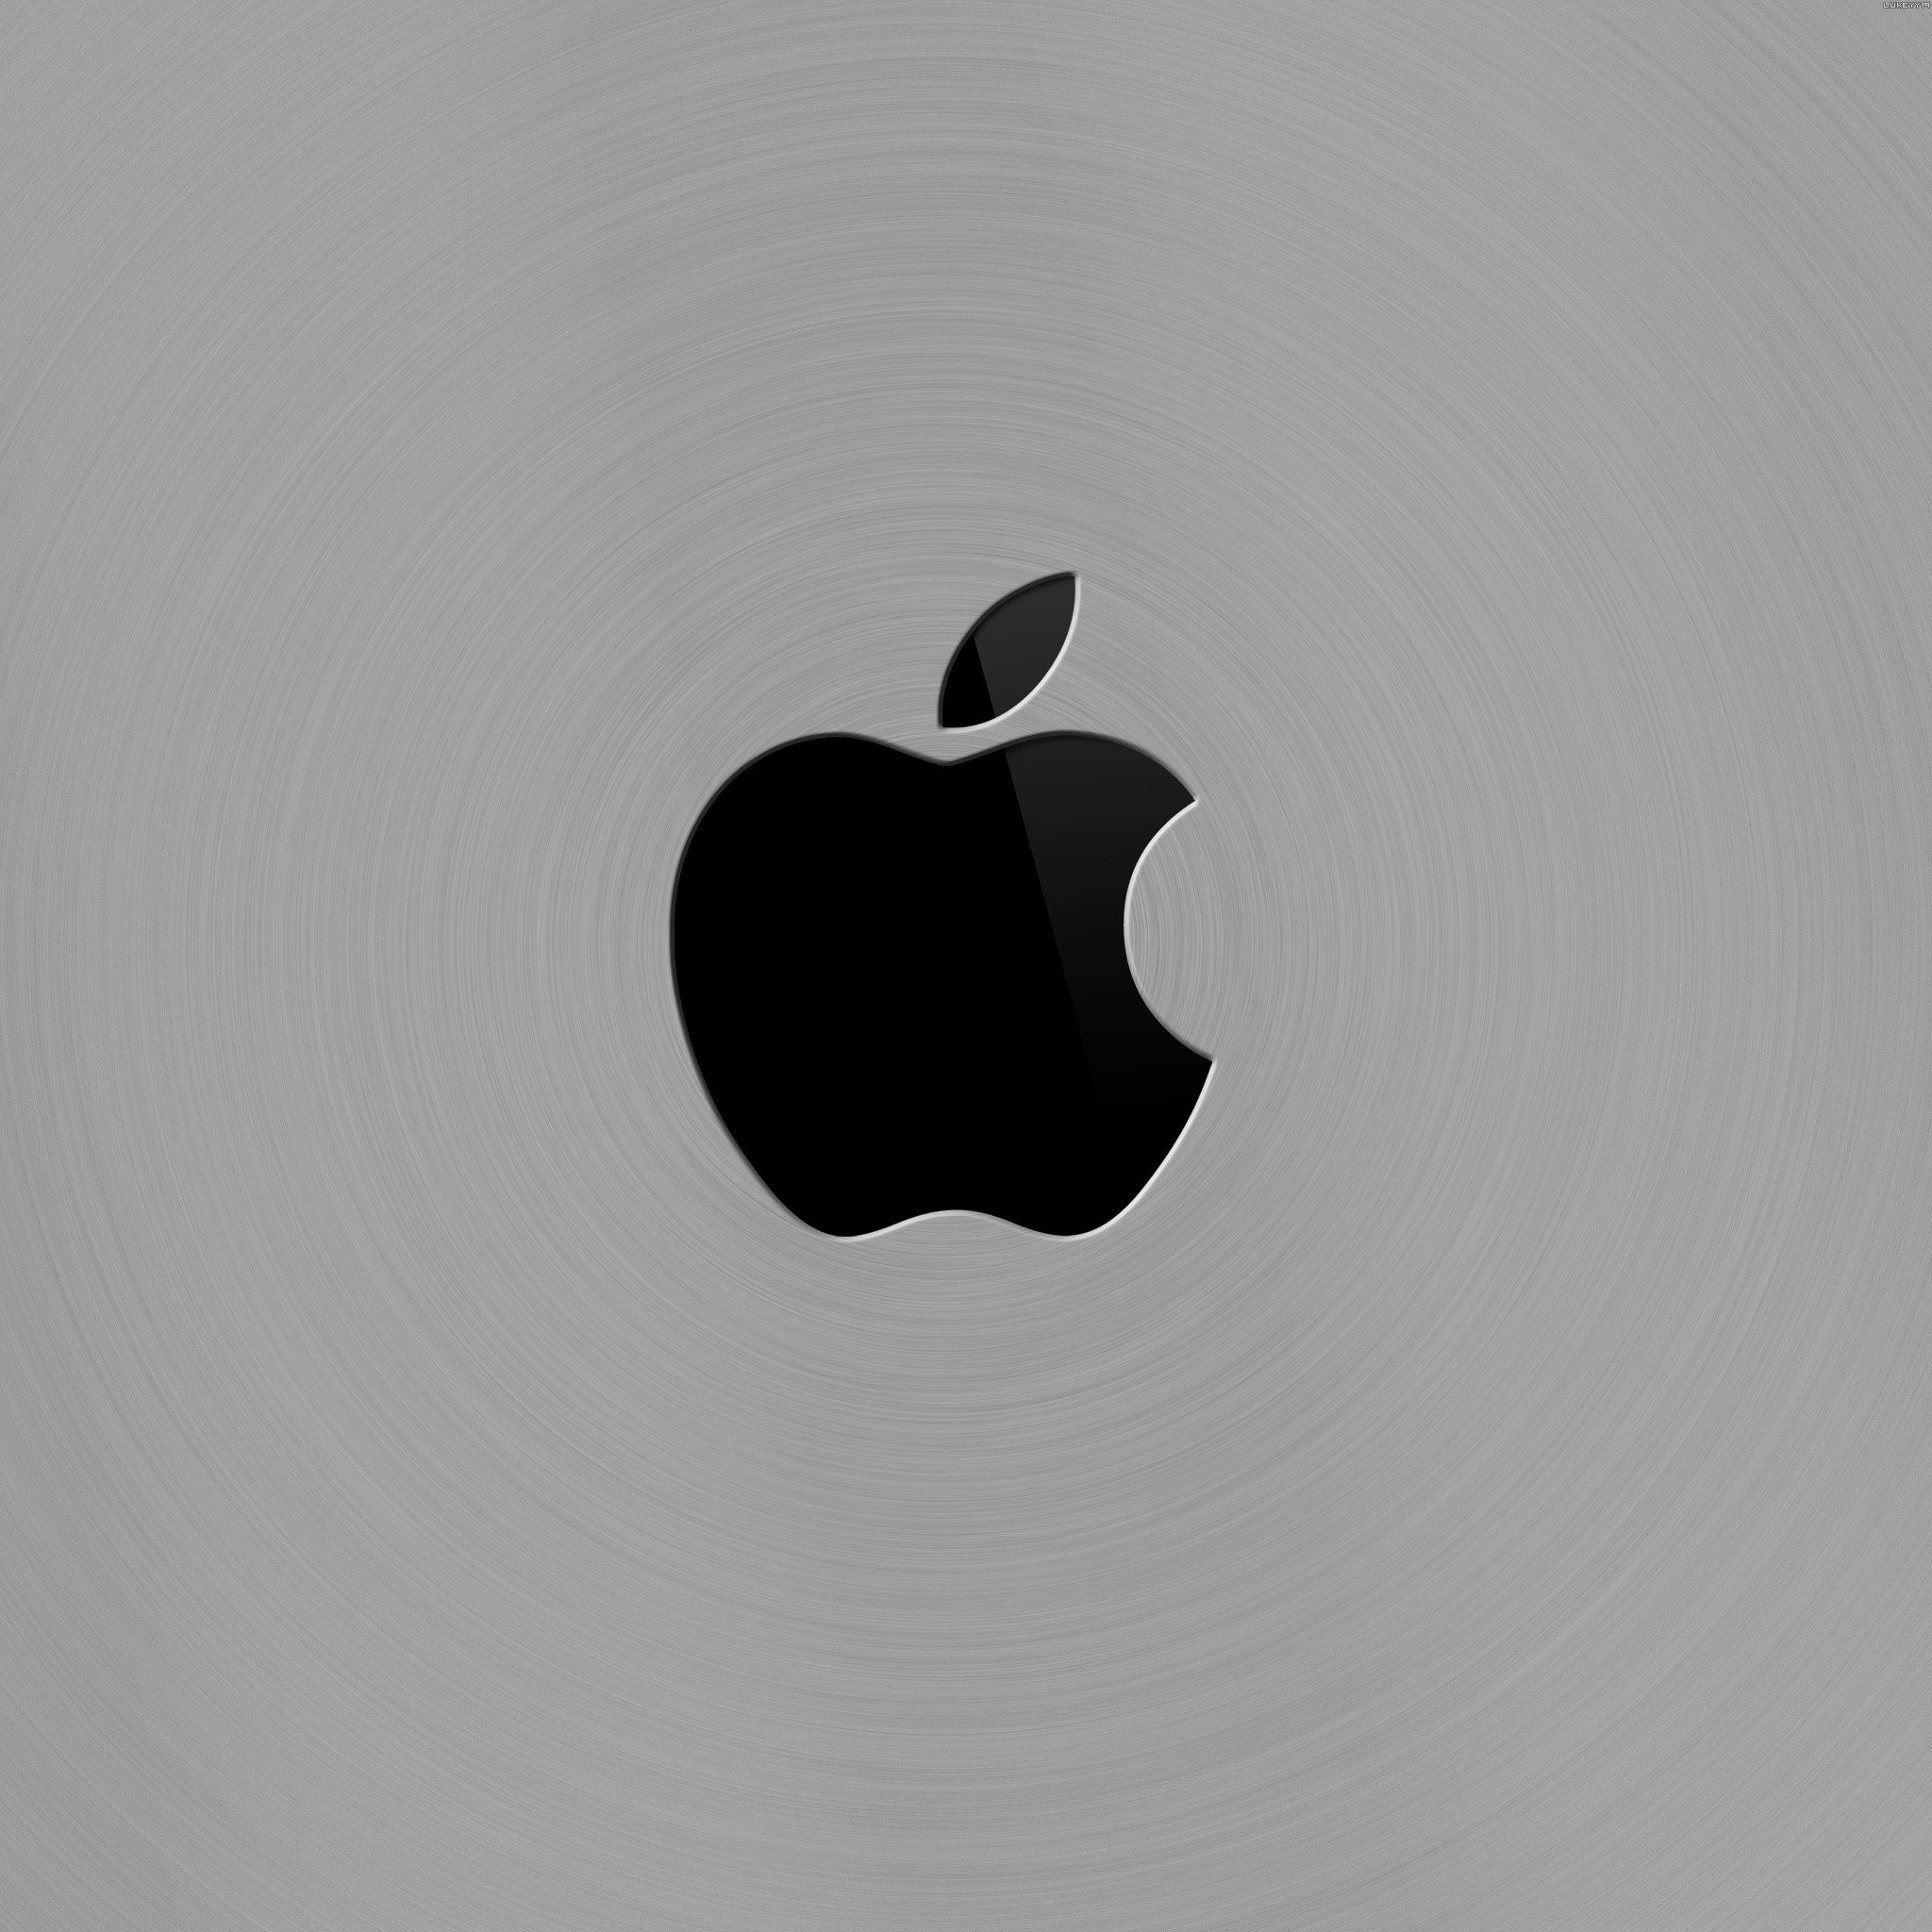 Wallpapers For Mac Hd: Mac Logo Wallpaper (77+ Pictures